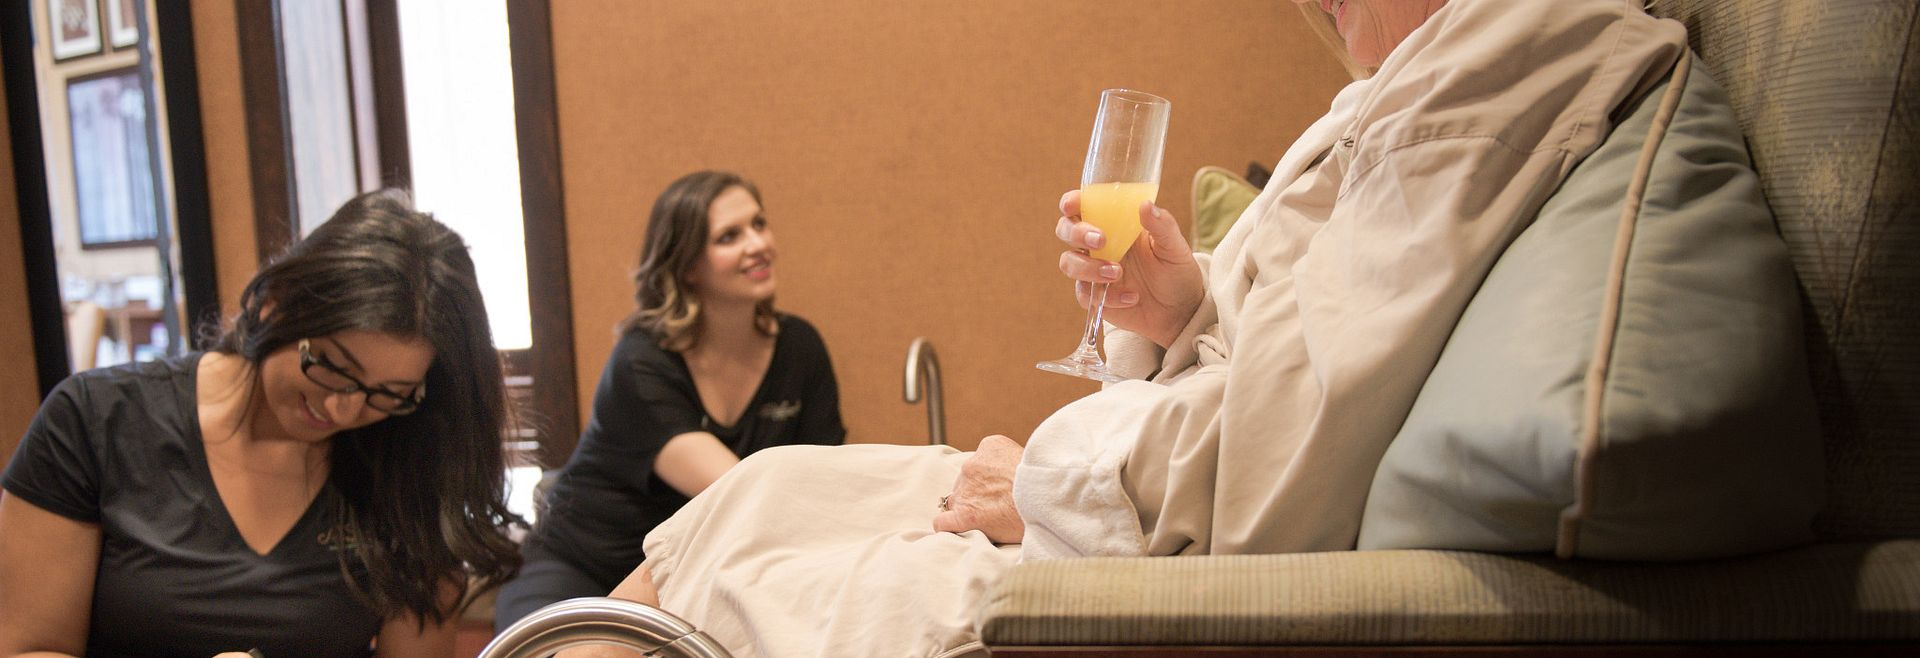 Woman in spa robe, holding beverage, and getting a pedicure